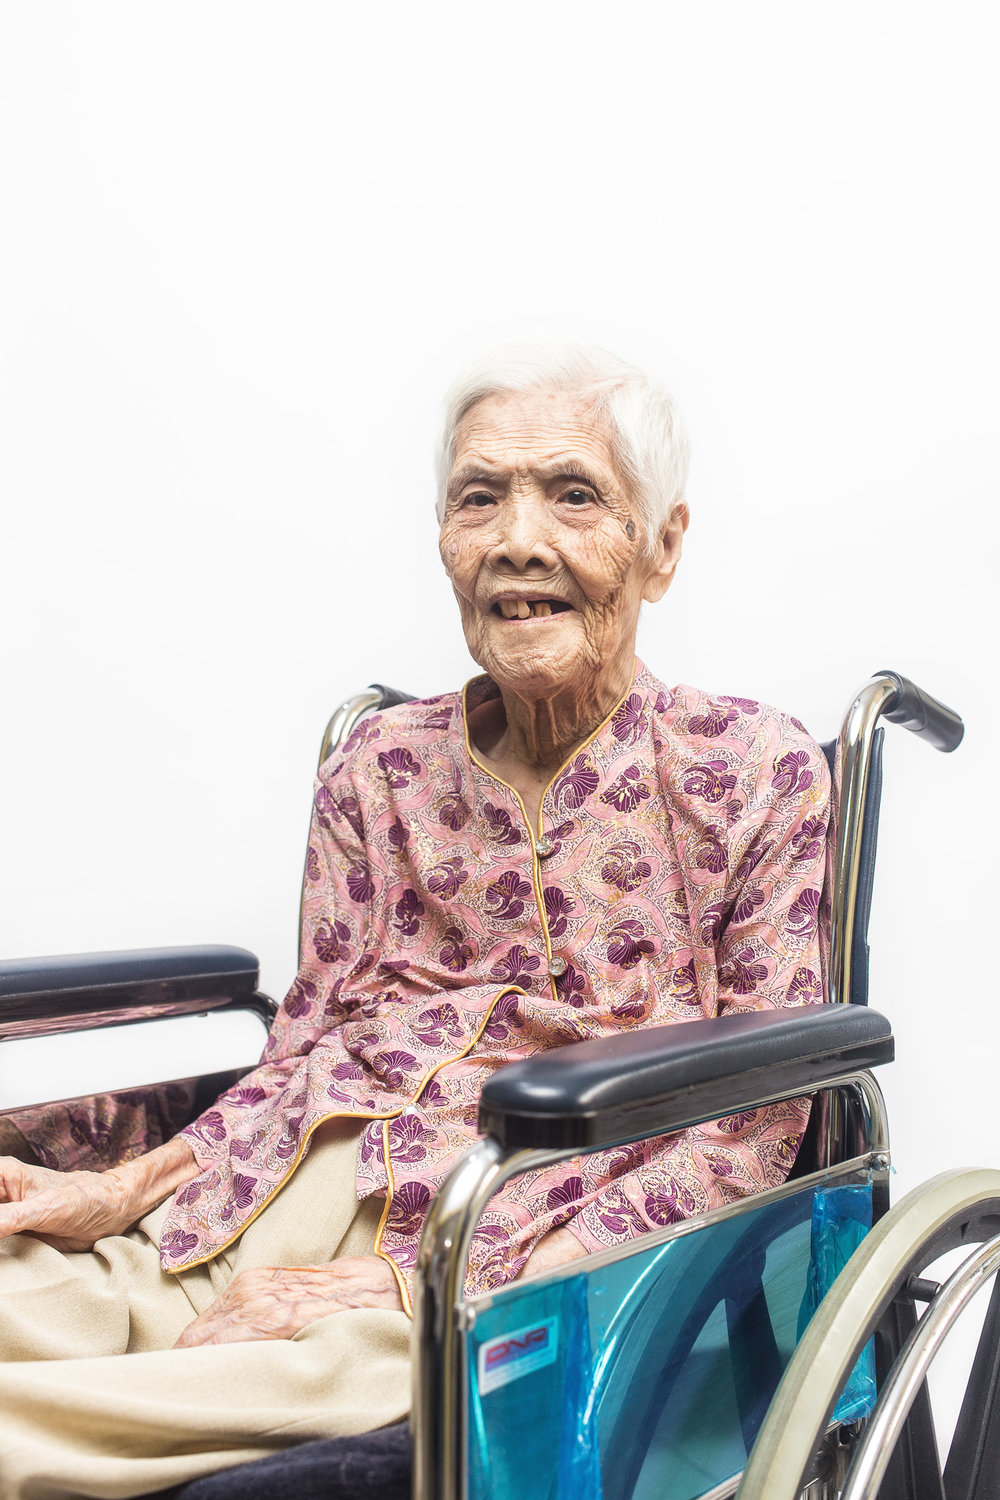 zainal-zainal-studio-centenarians-care-duke-nus-singapore-photographer-16.jpg